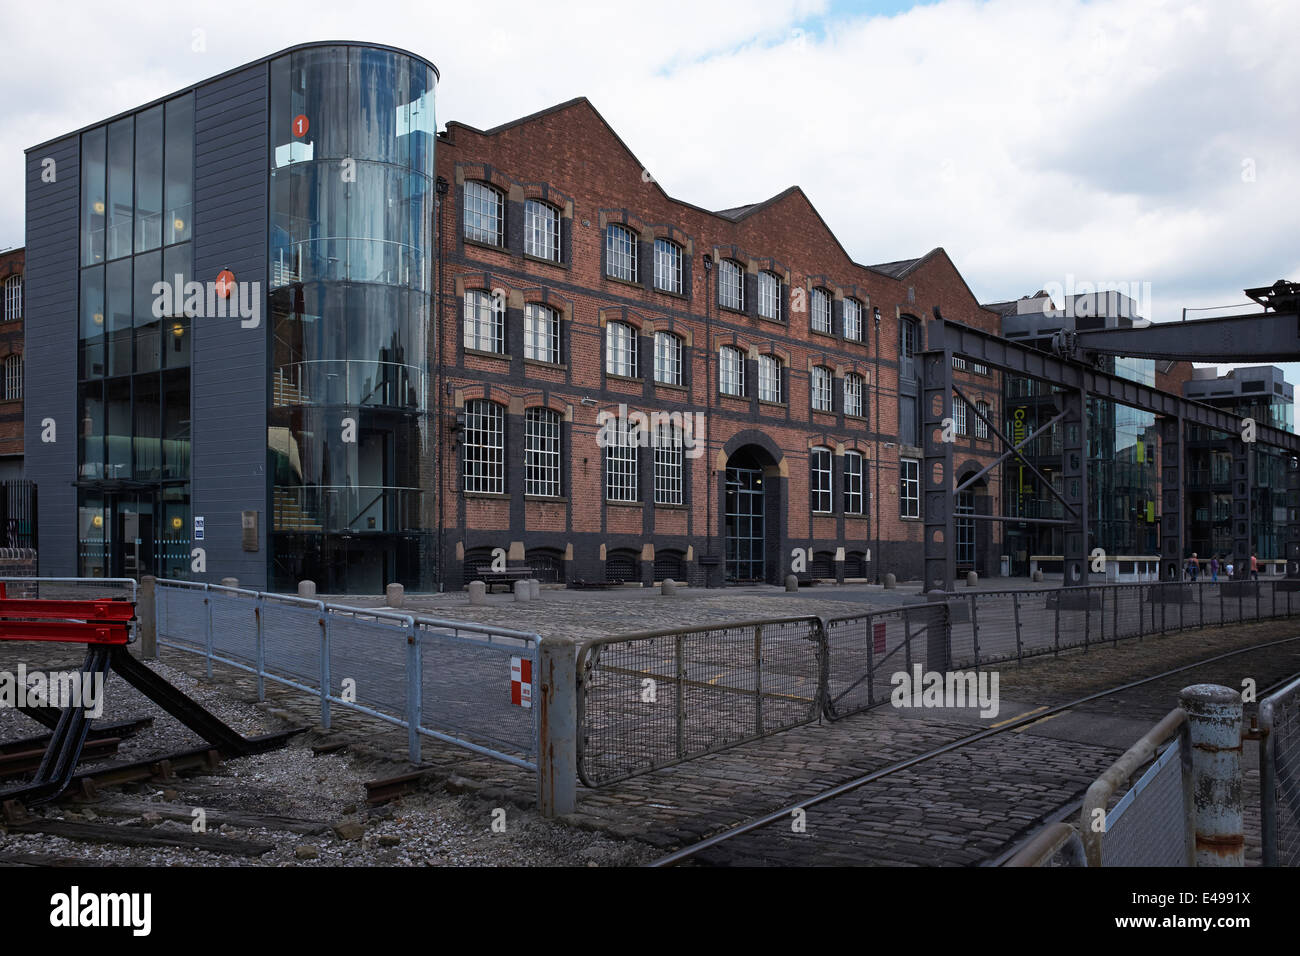 Museum of Science and Industry in Manchester city centre UK - Stock Image